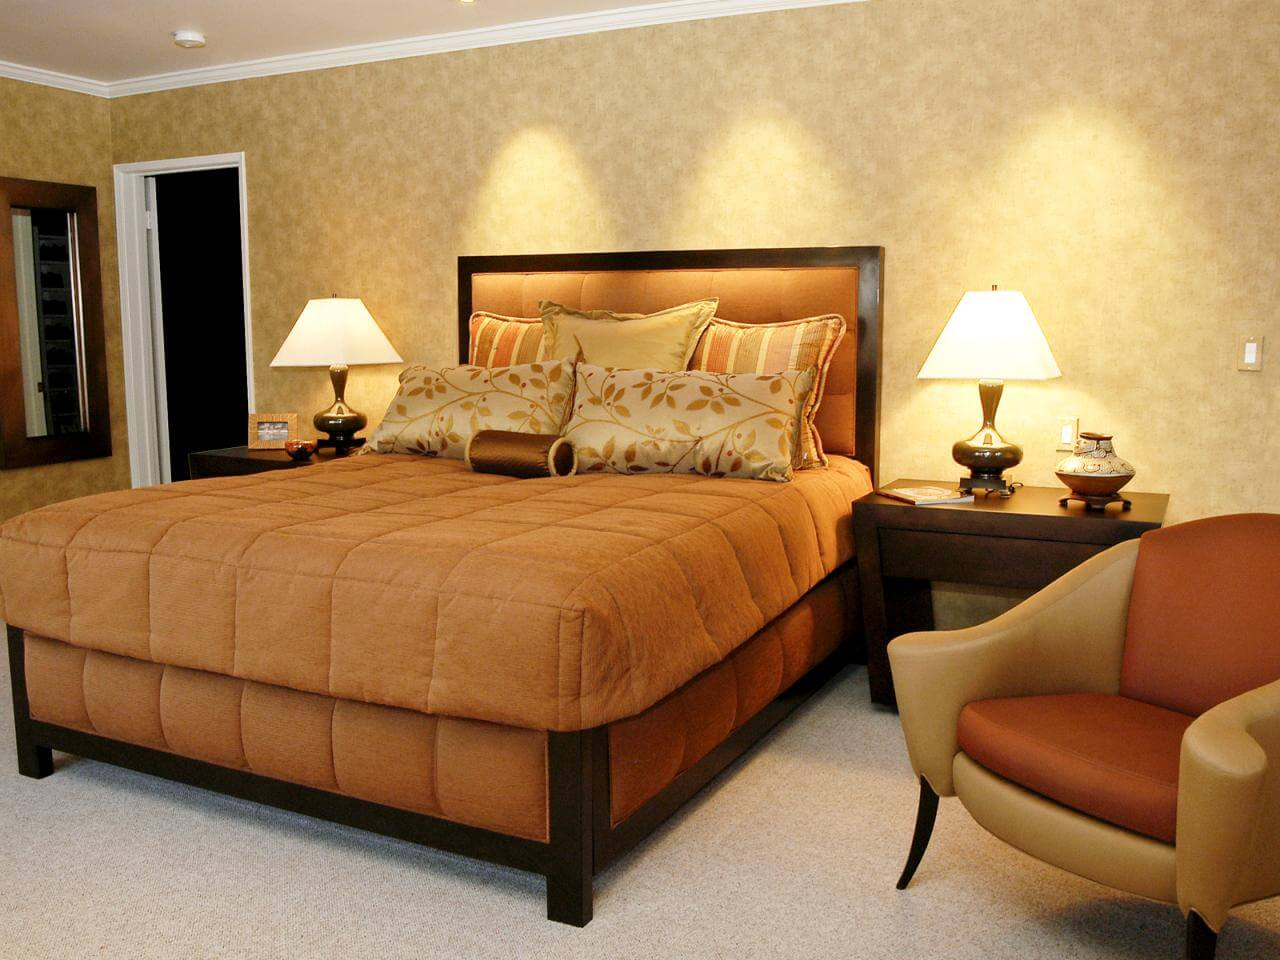 headboard design ideas for modern bedroom